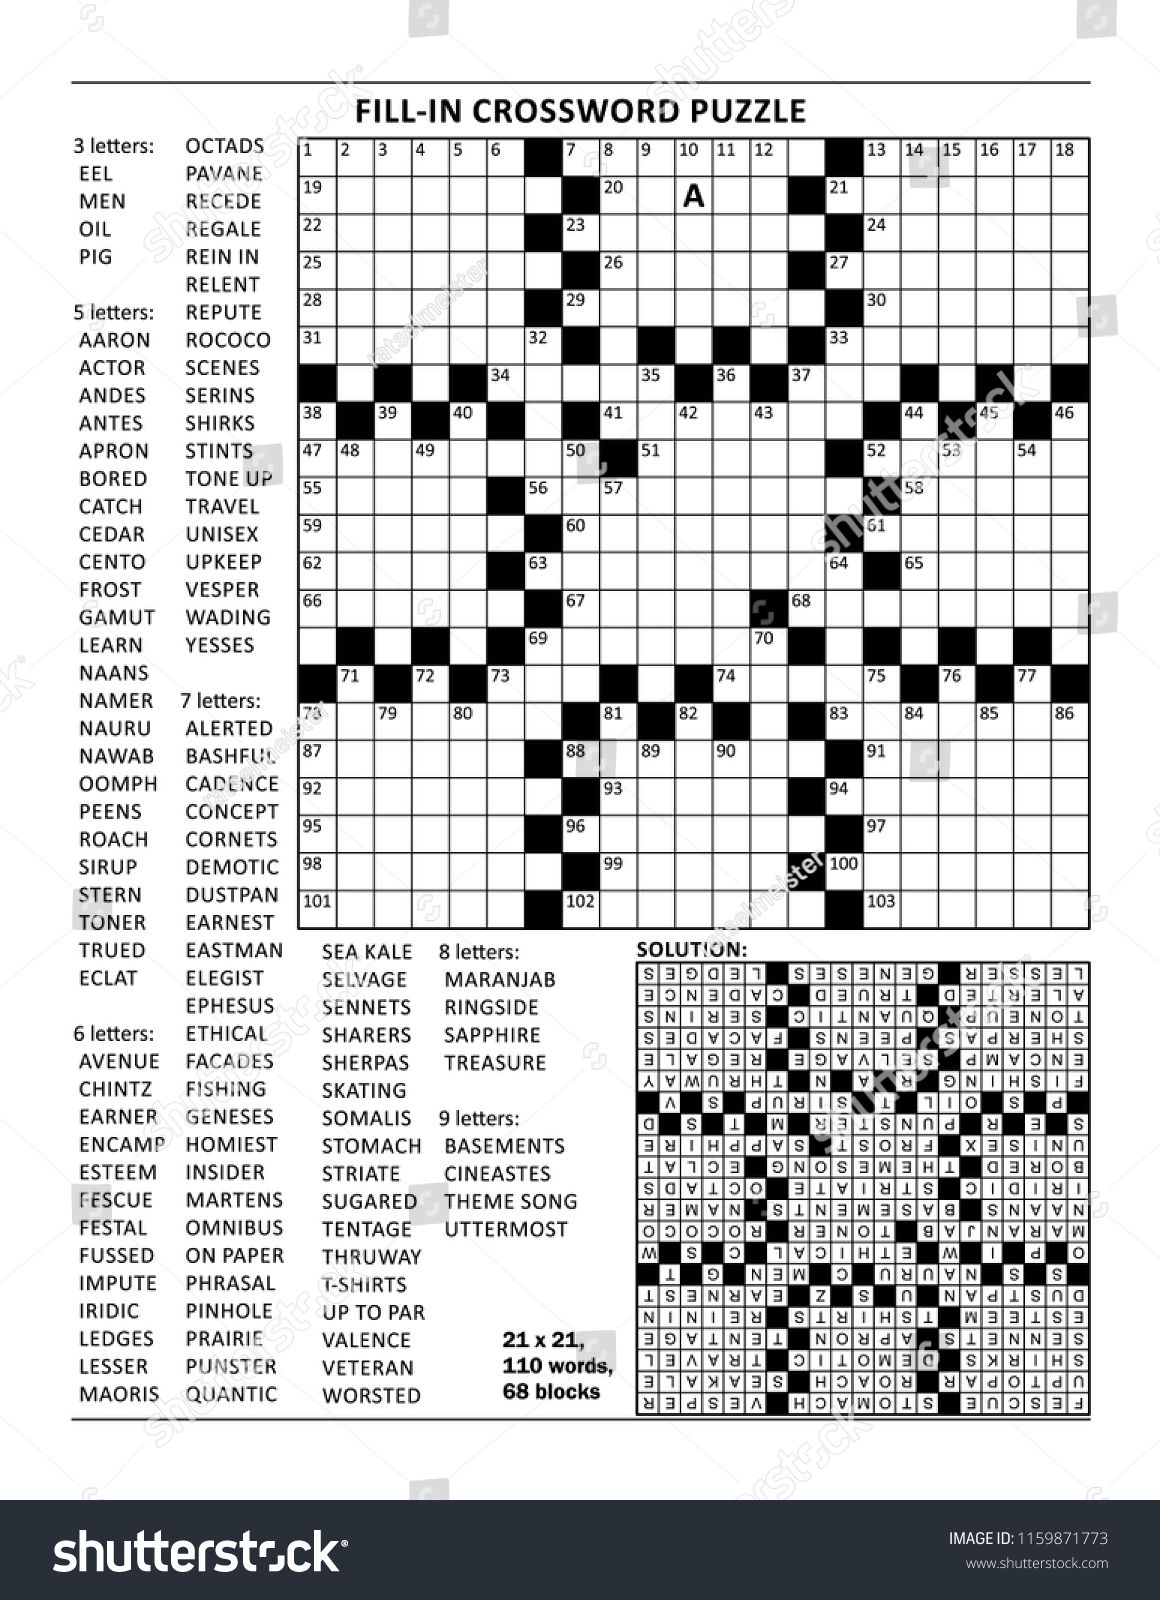 Fill In The Blanks Crossword Puzzle With American Style Grid Of - Blank Crossword Puzzle Grids Printable